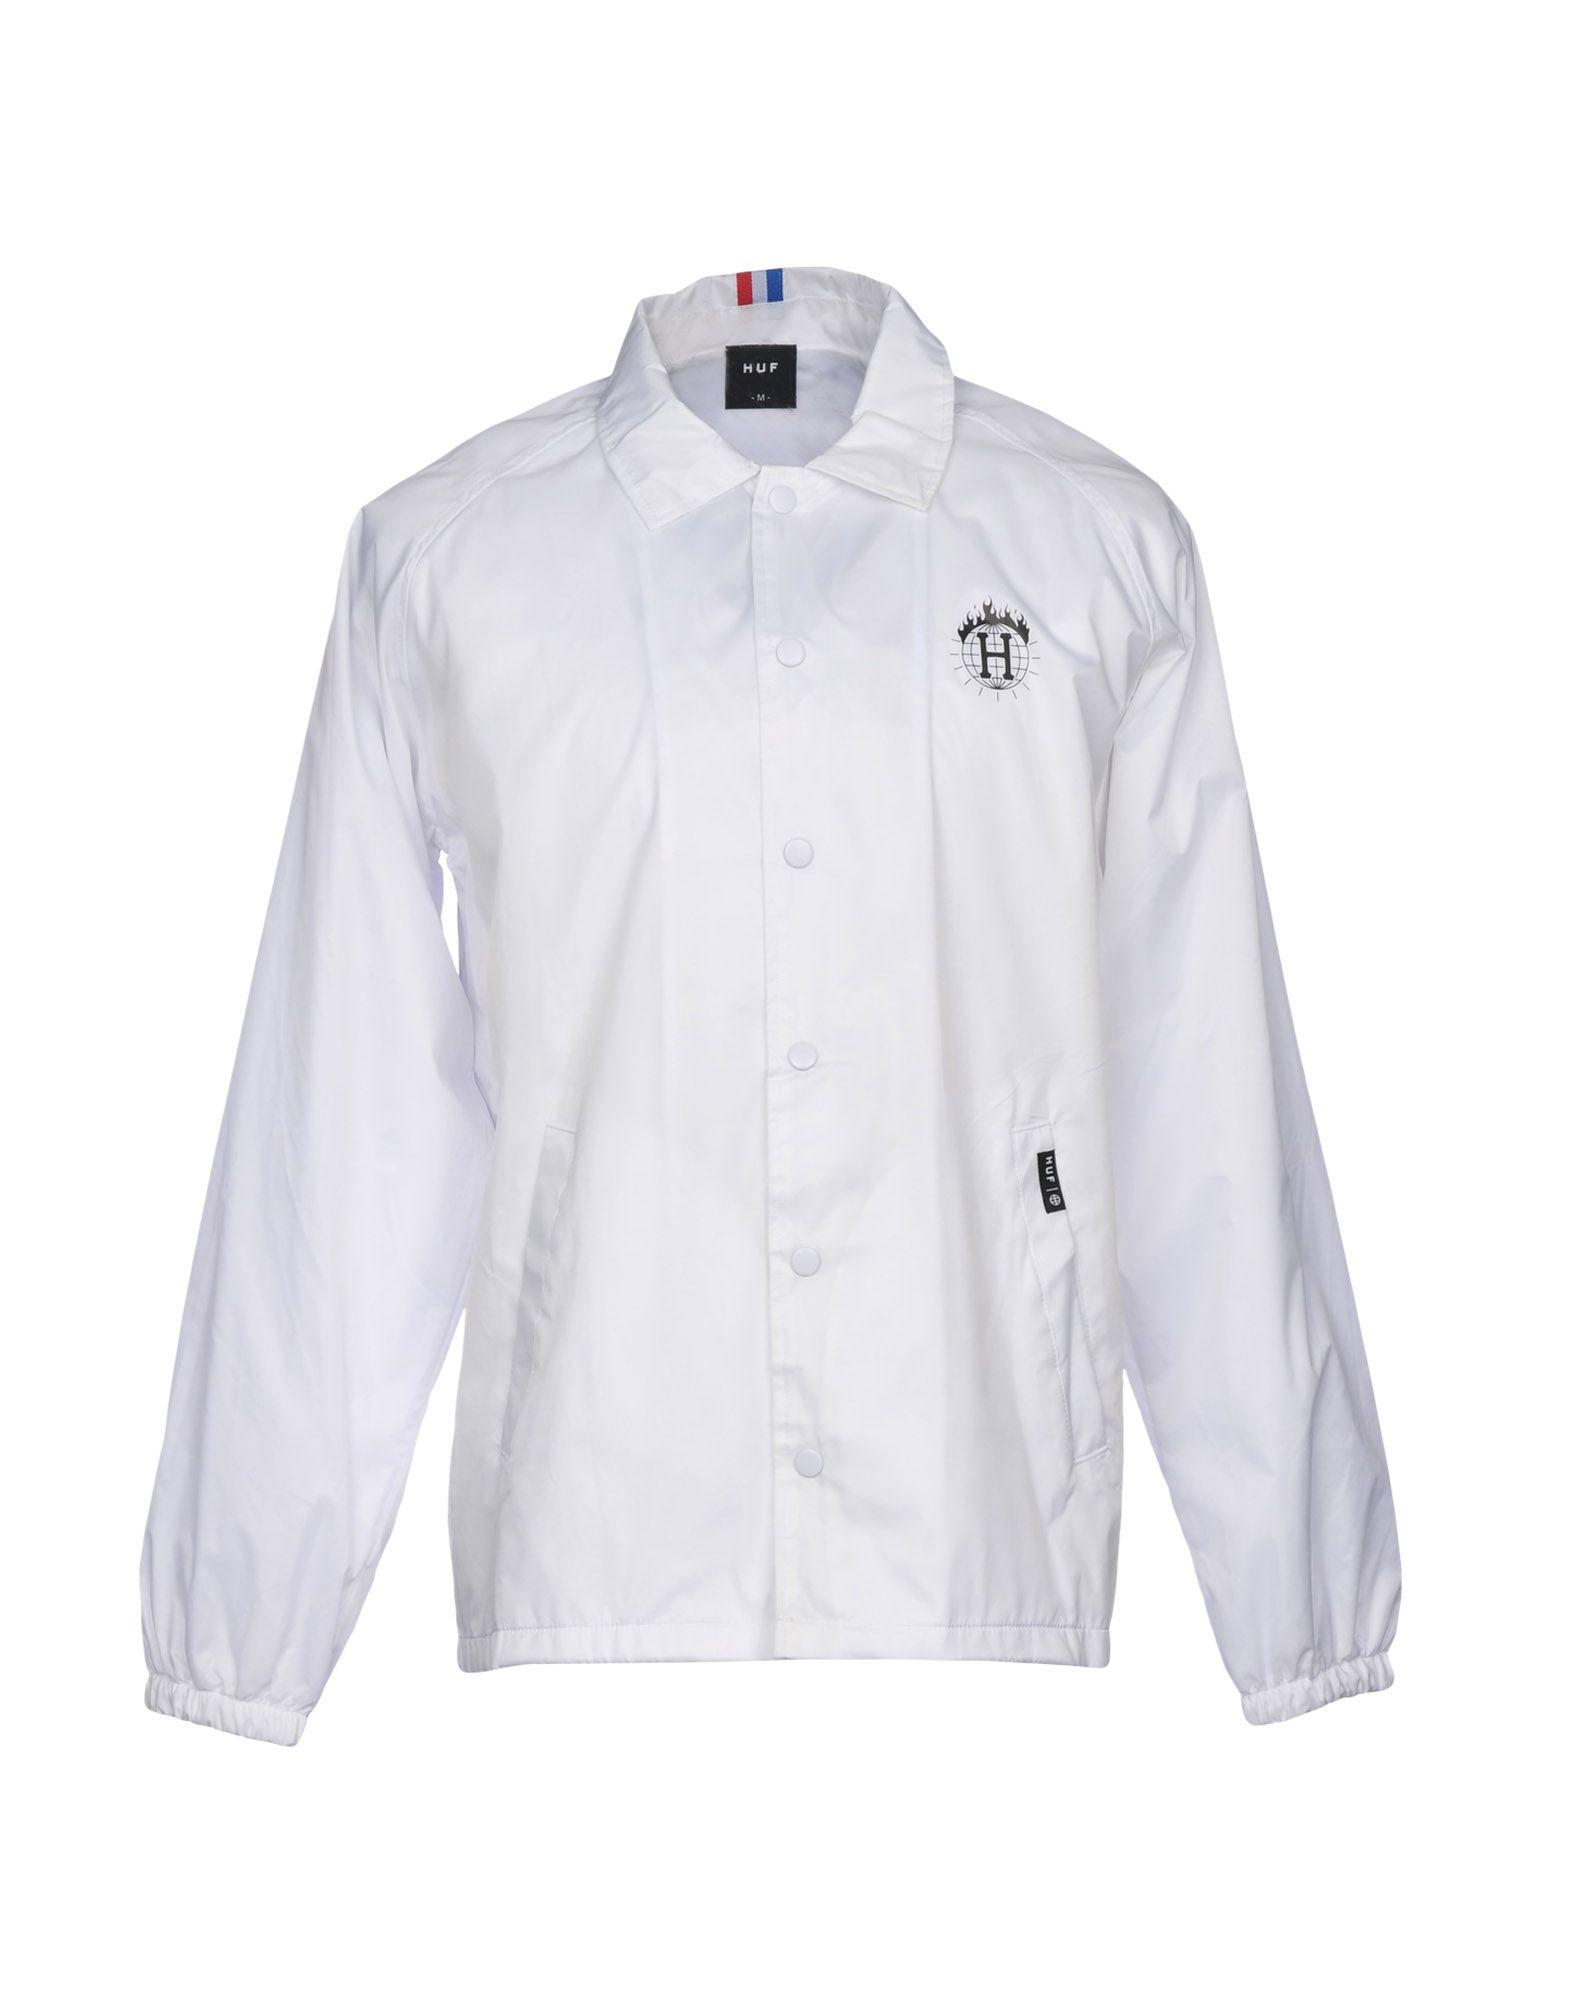 Huf Jackets In White